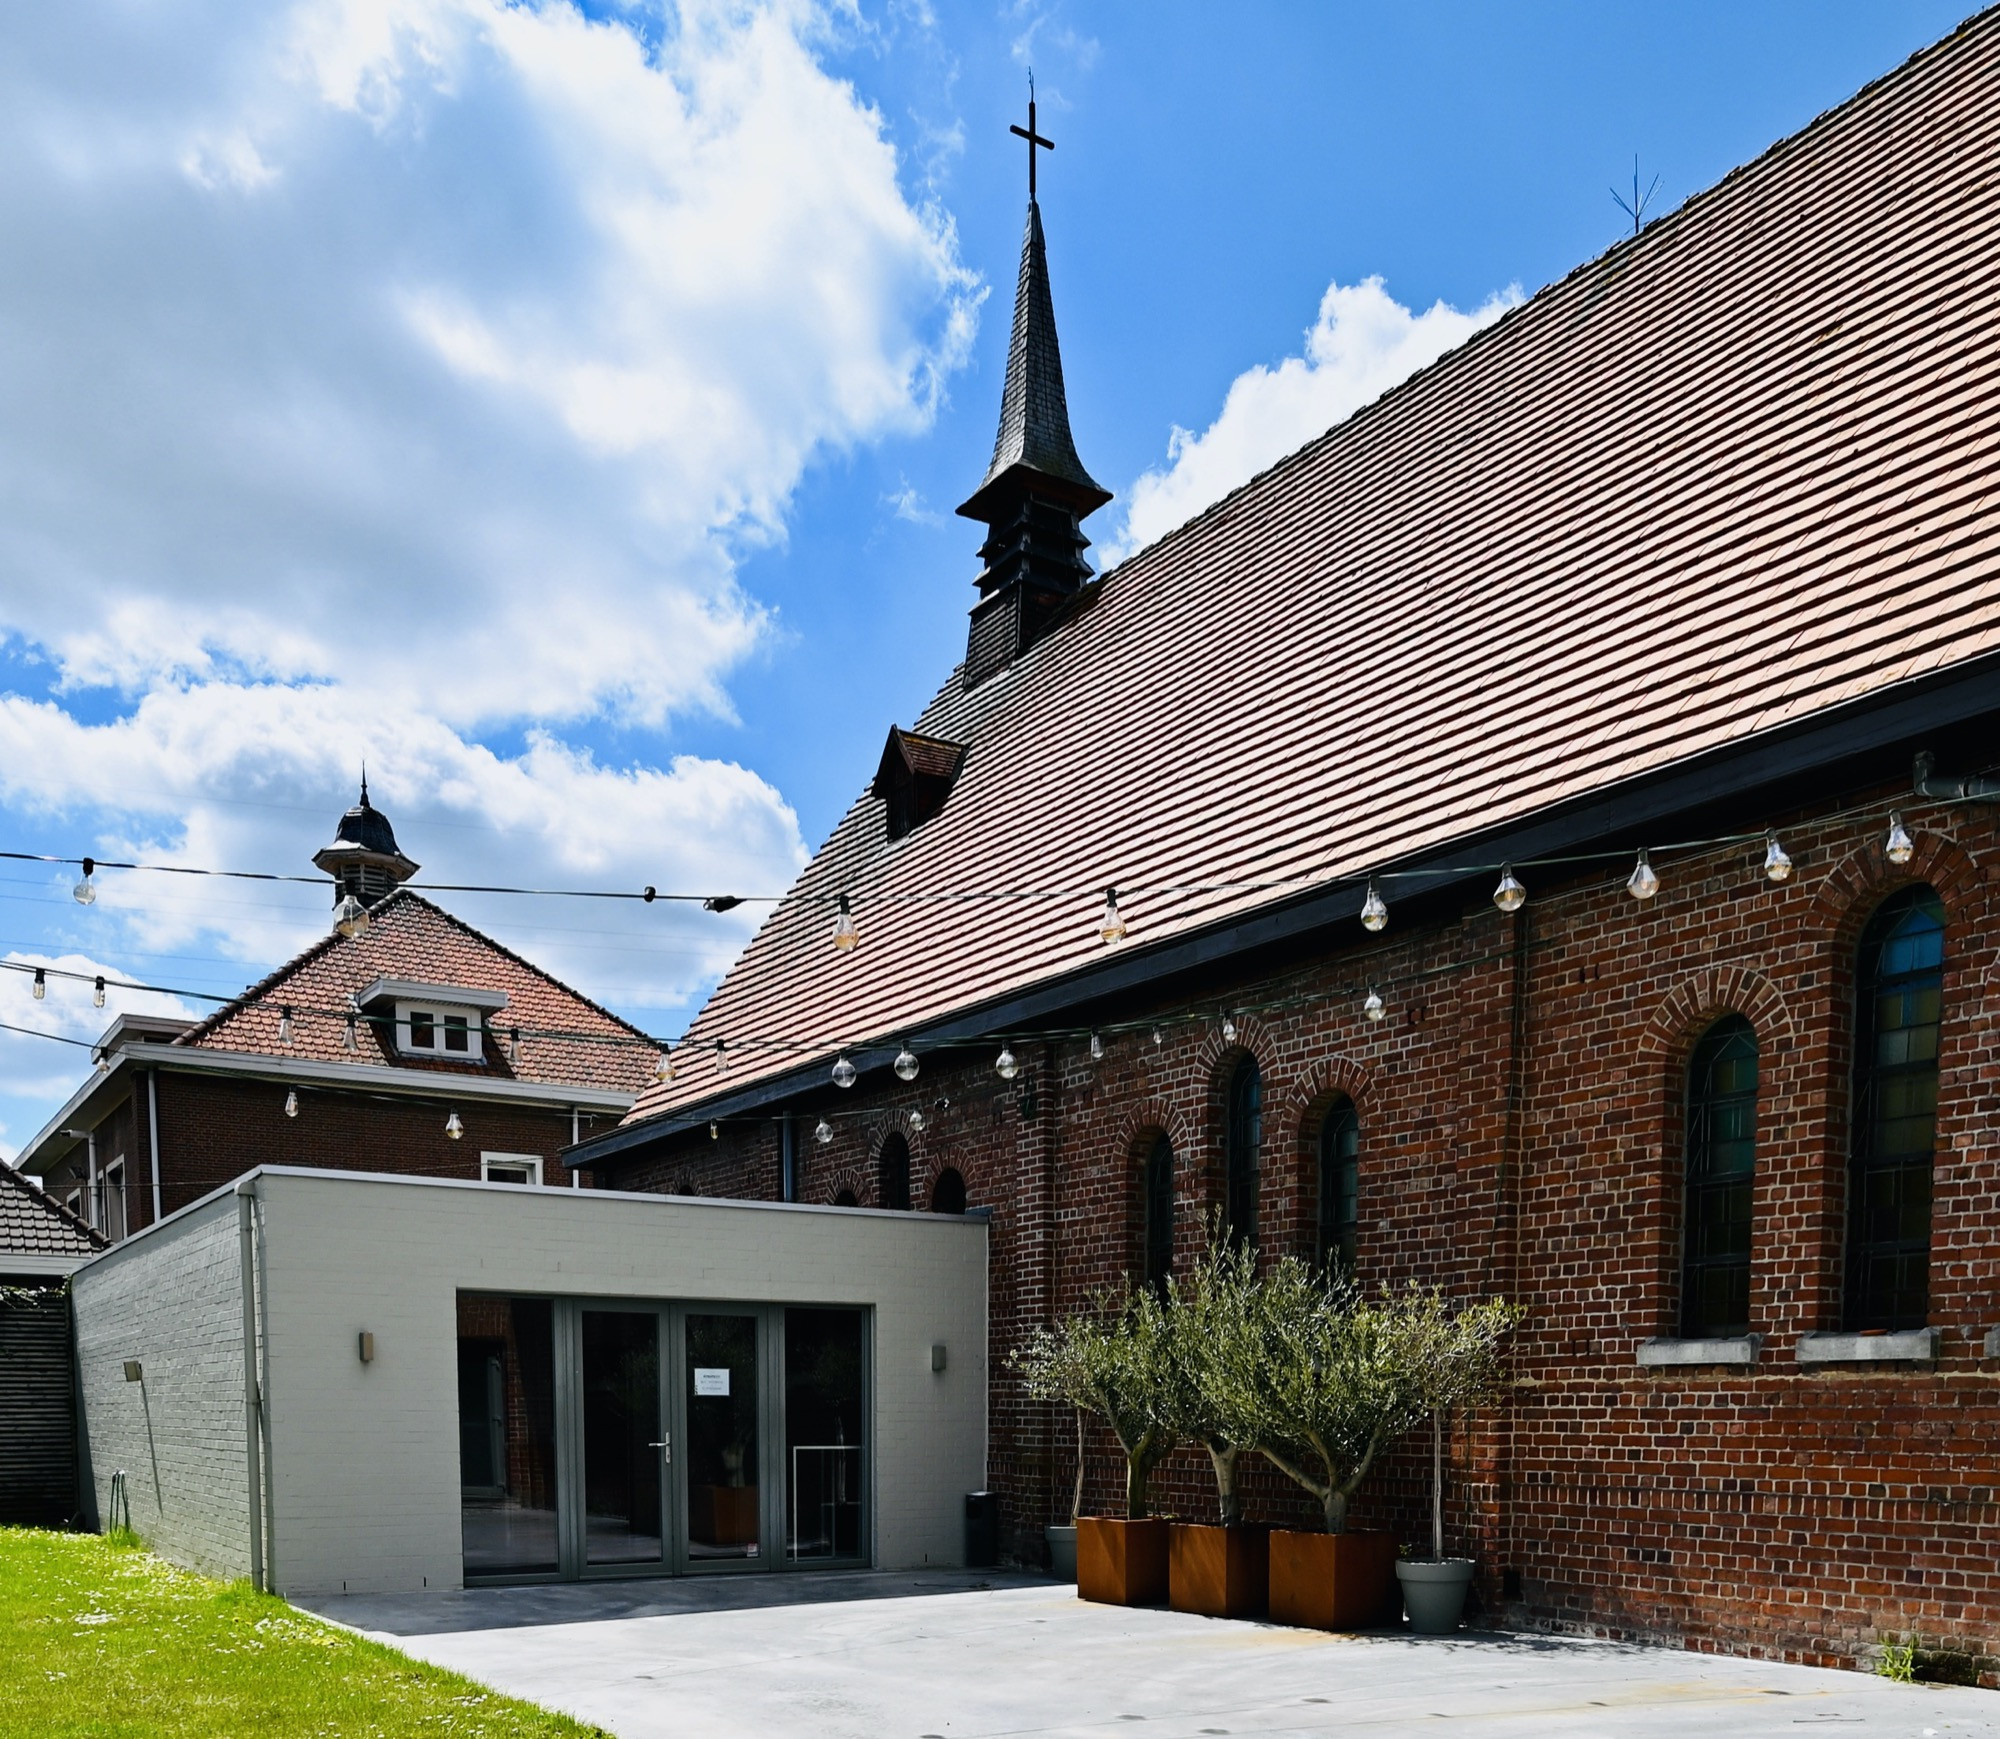 't Sacrament Roeselare - Roeselare